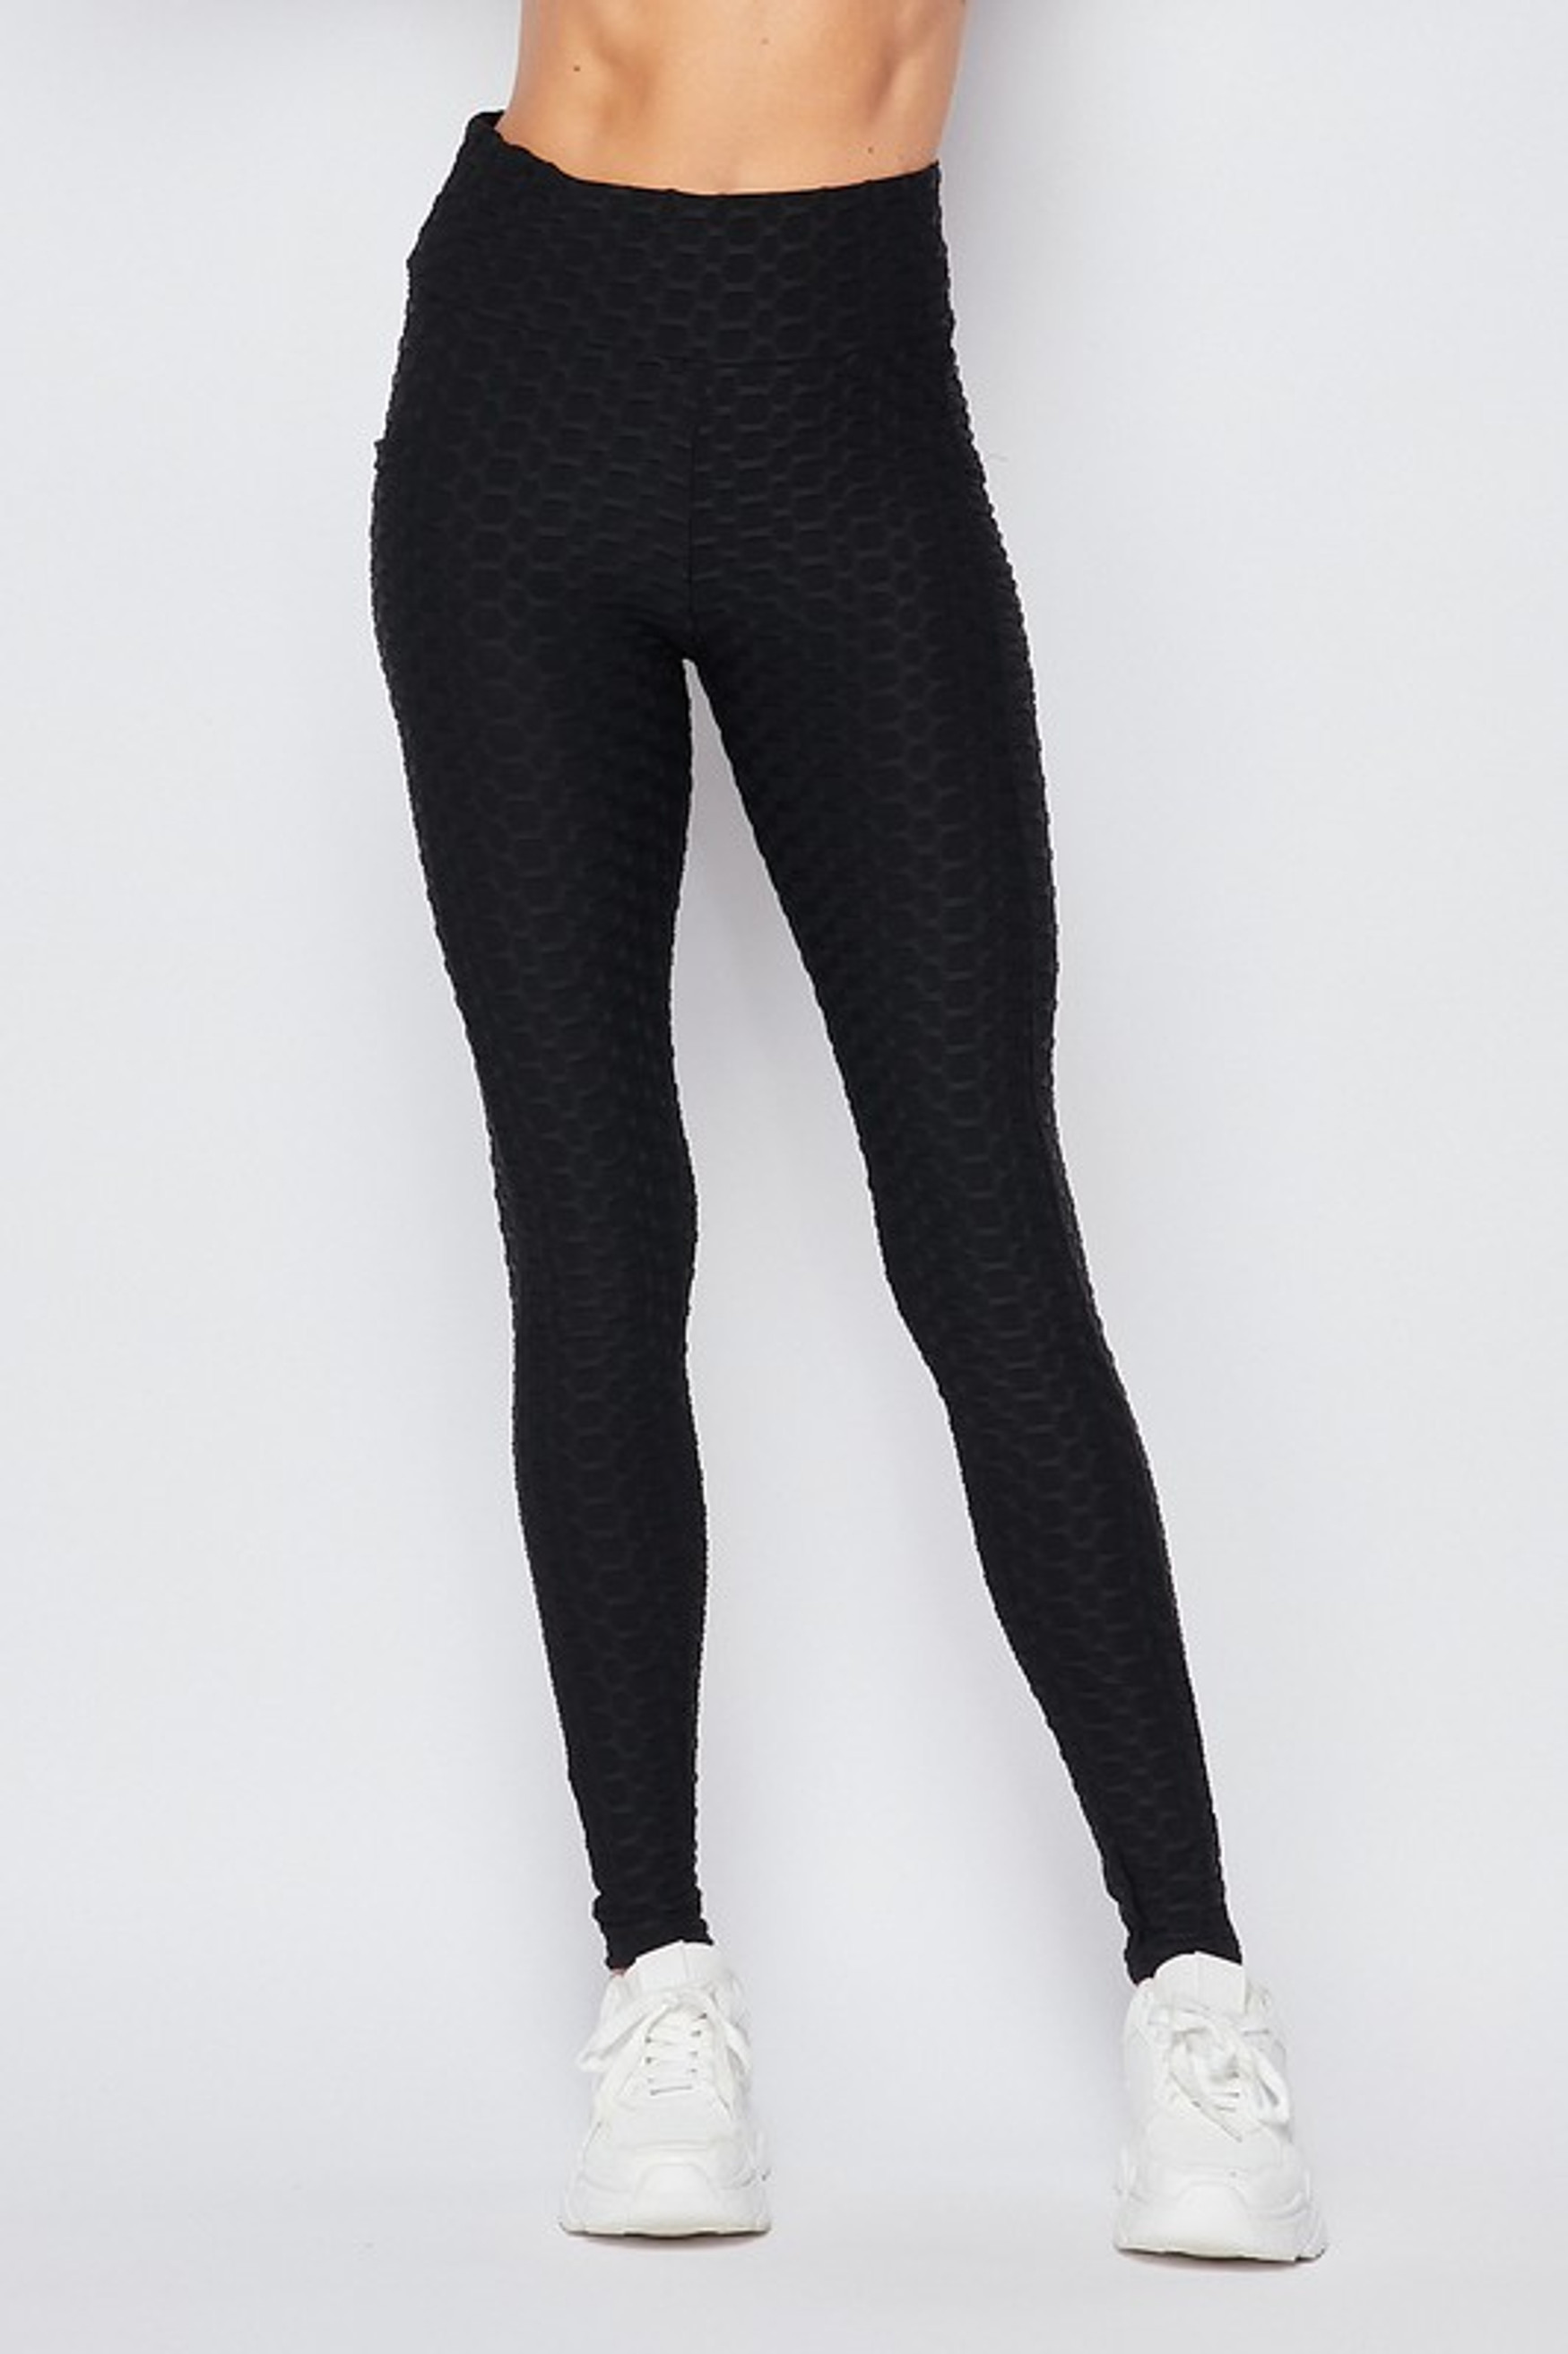 Front side imge of BlackScrunch Butt Popcorn Textured High Waisted Leggings with Pockets - Zinati (W&J)